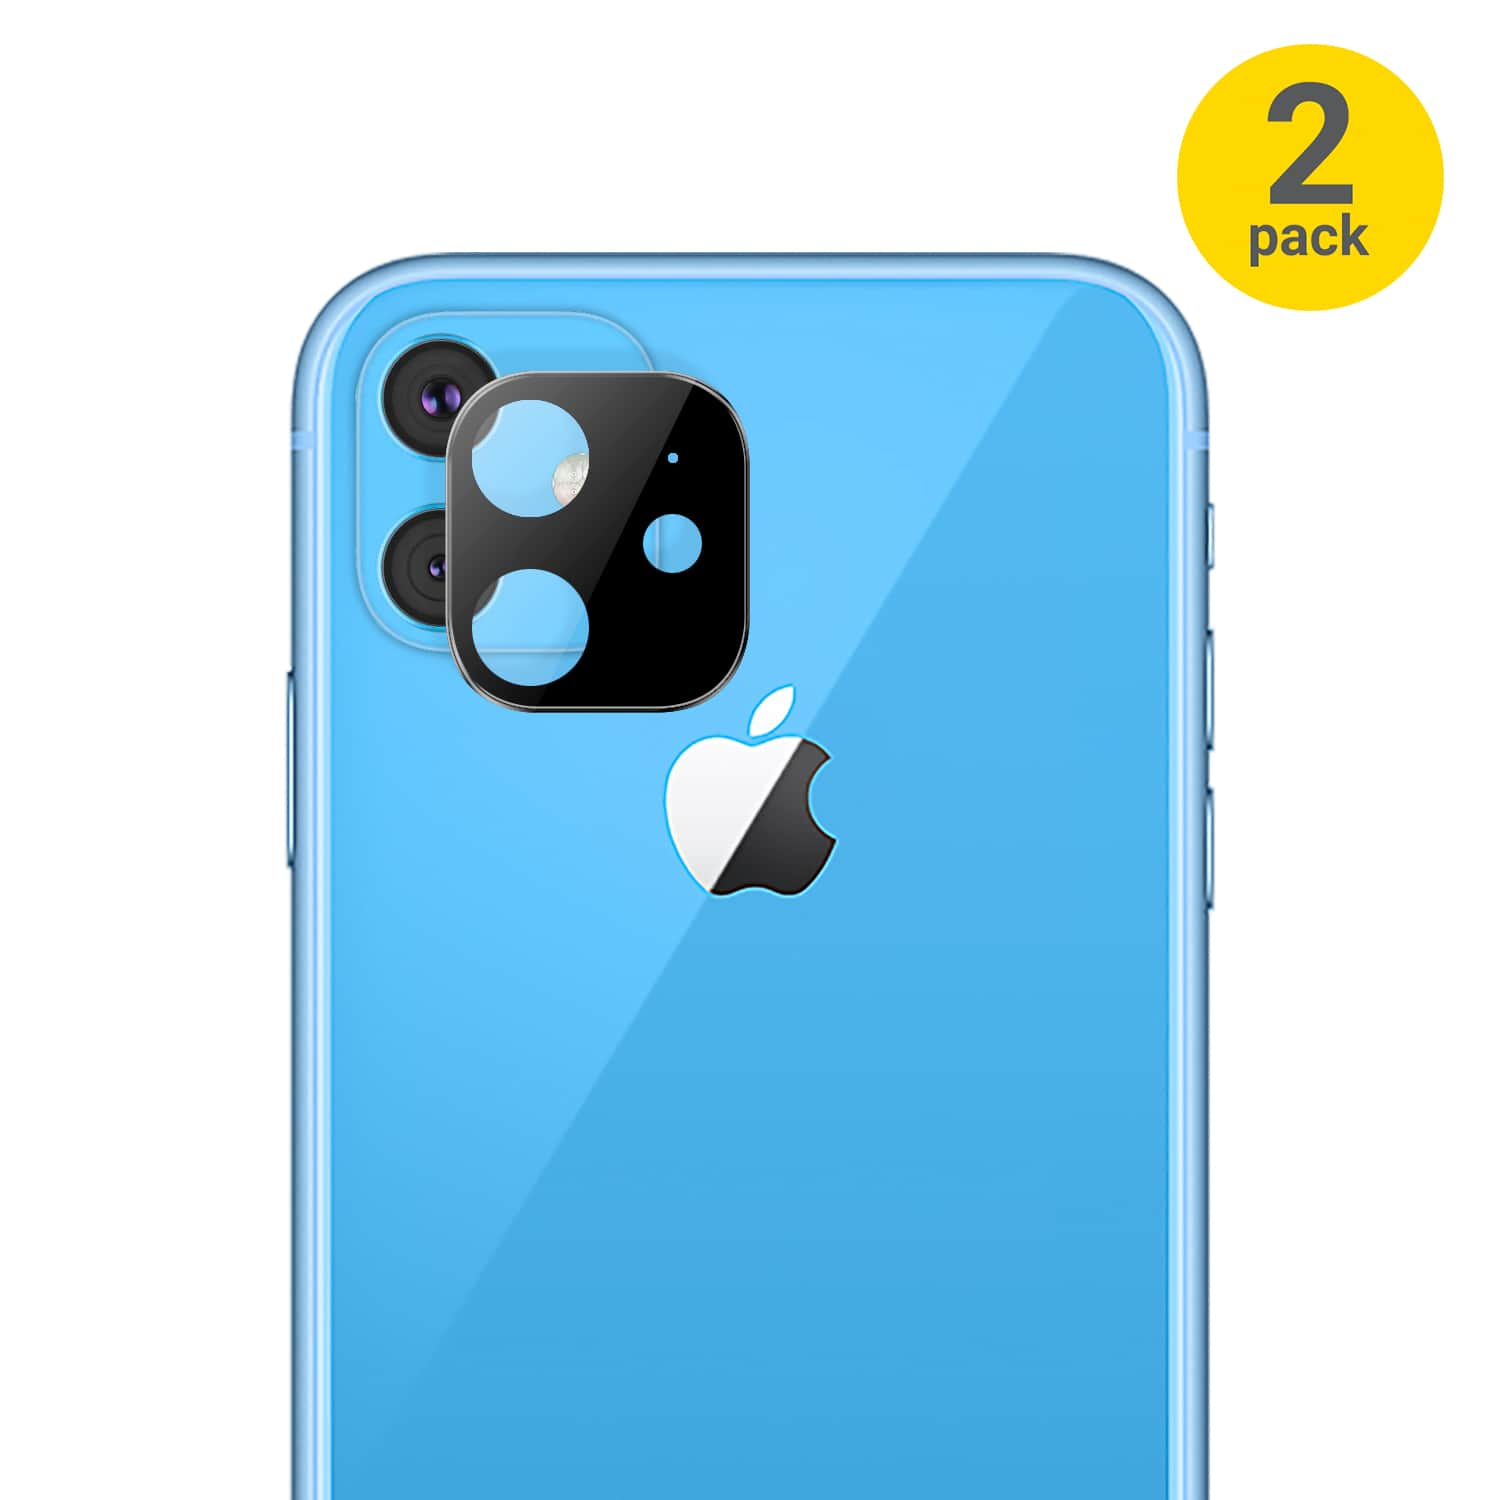 Olixar iPhone 11R camera protectors